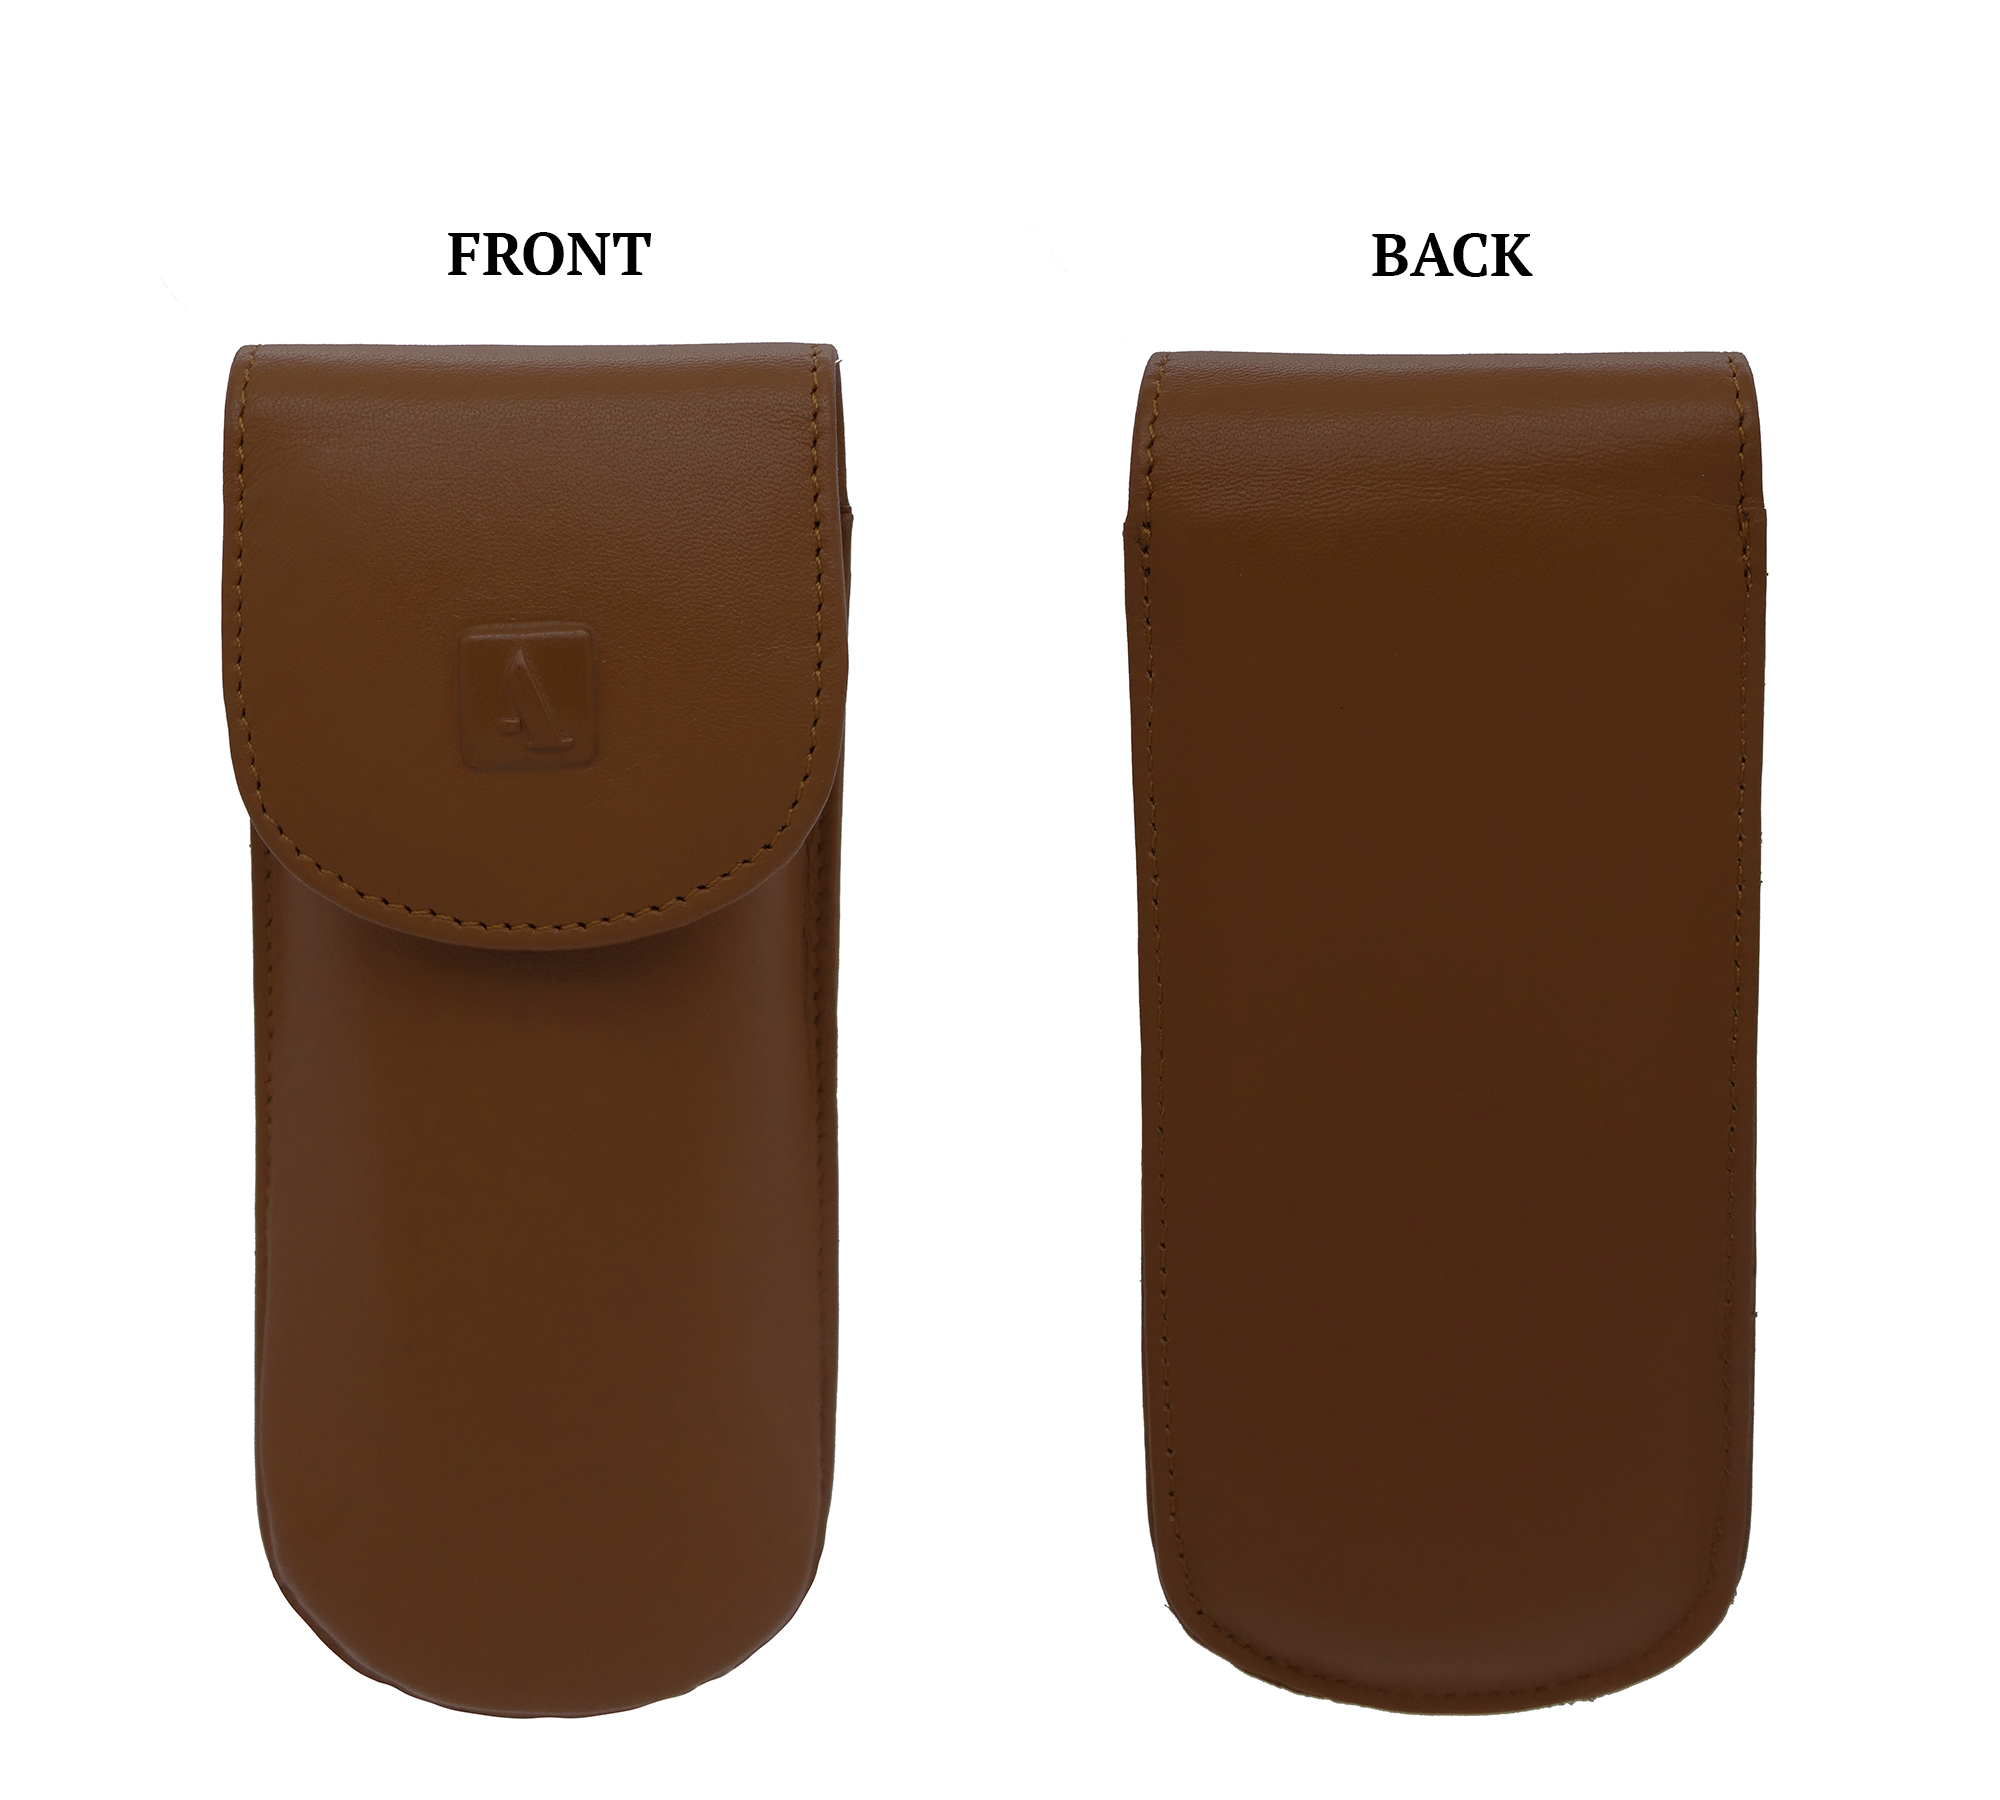 W74--Reading spectacle semi hard case in Genuine Leather - Tan